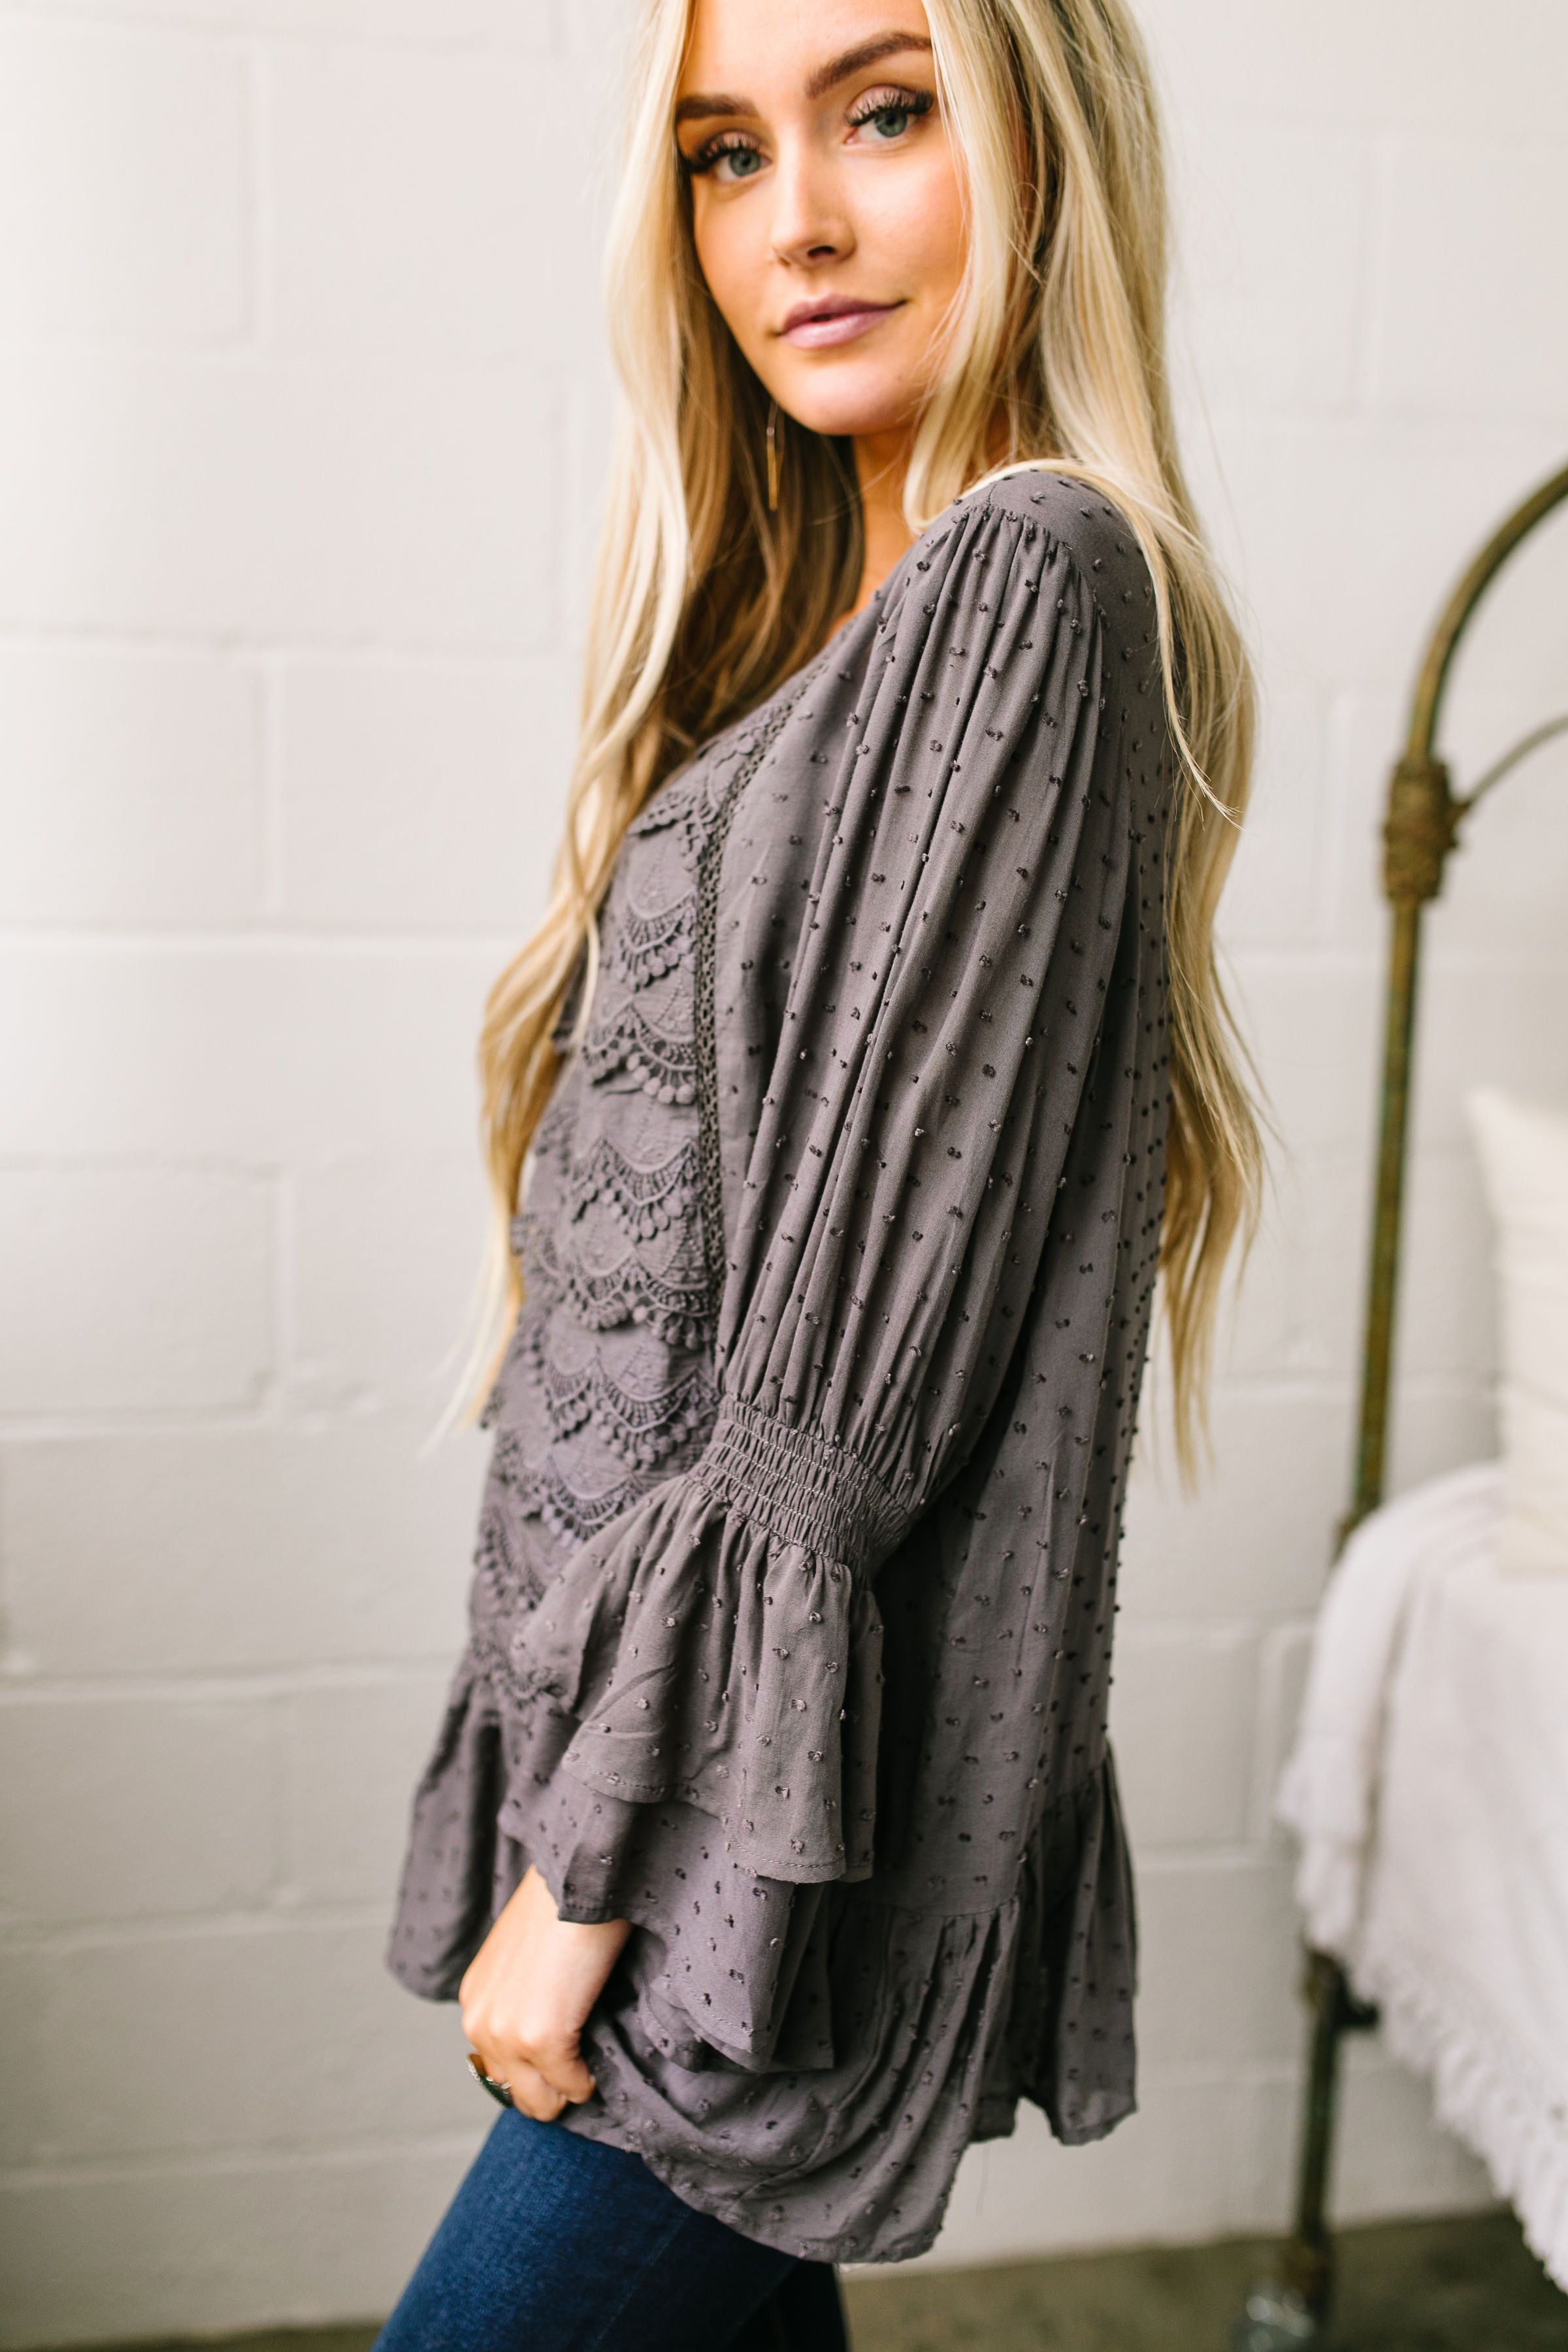 Play It Again Samantha Lace Top In Charcoal - ALL SALES FINAL